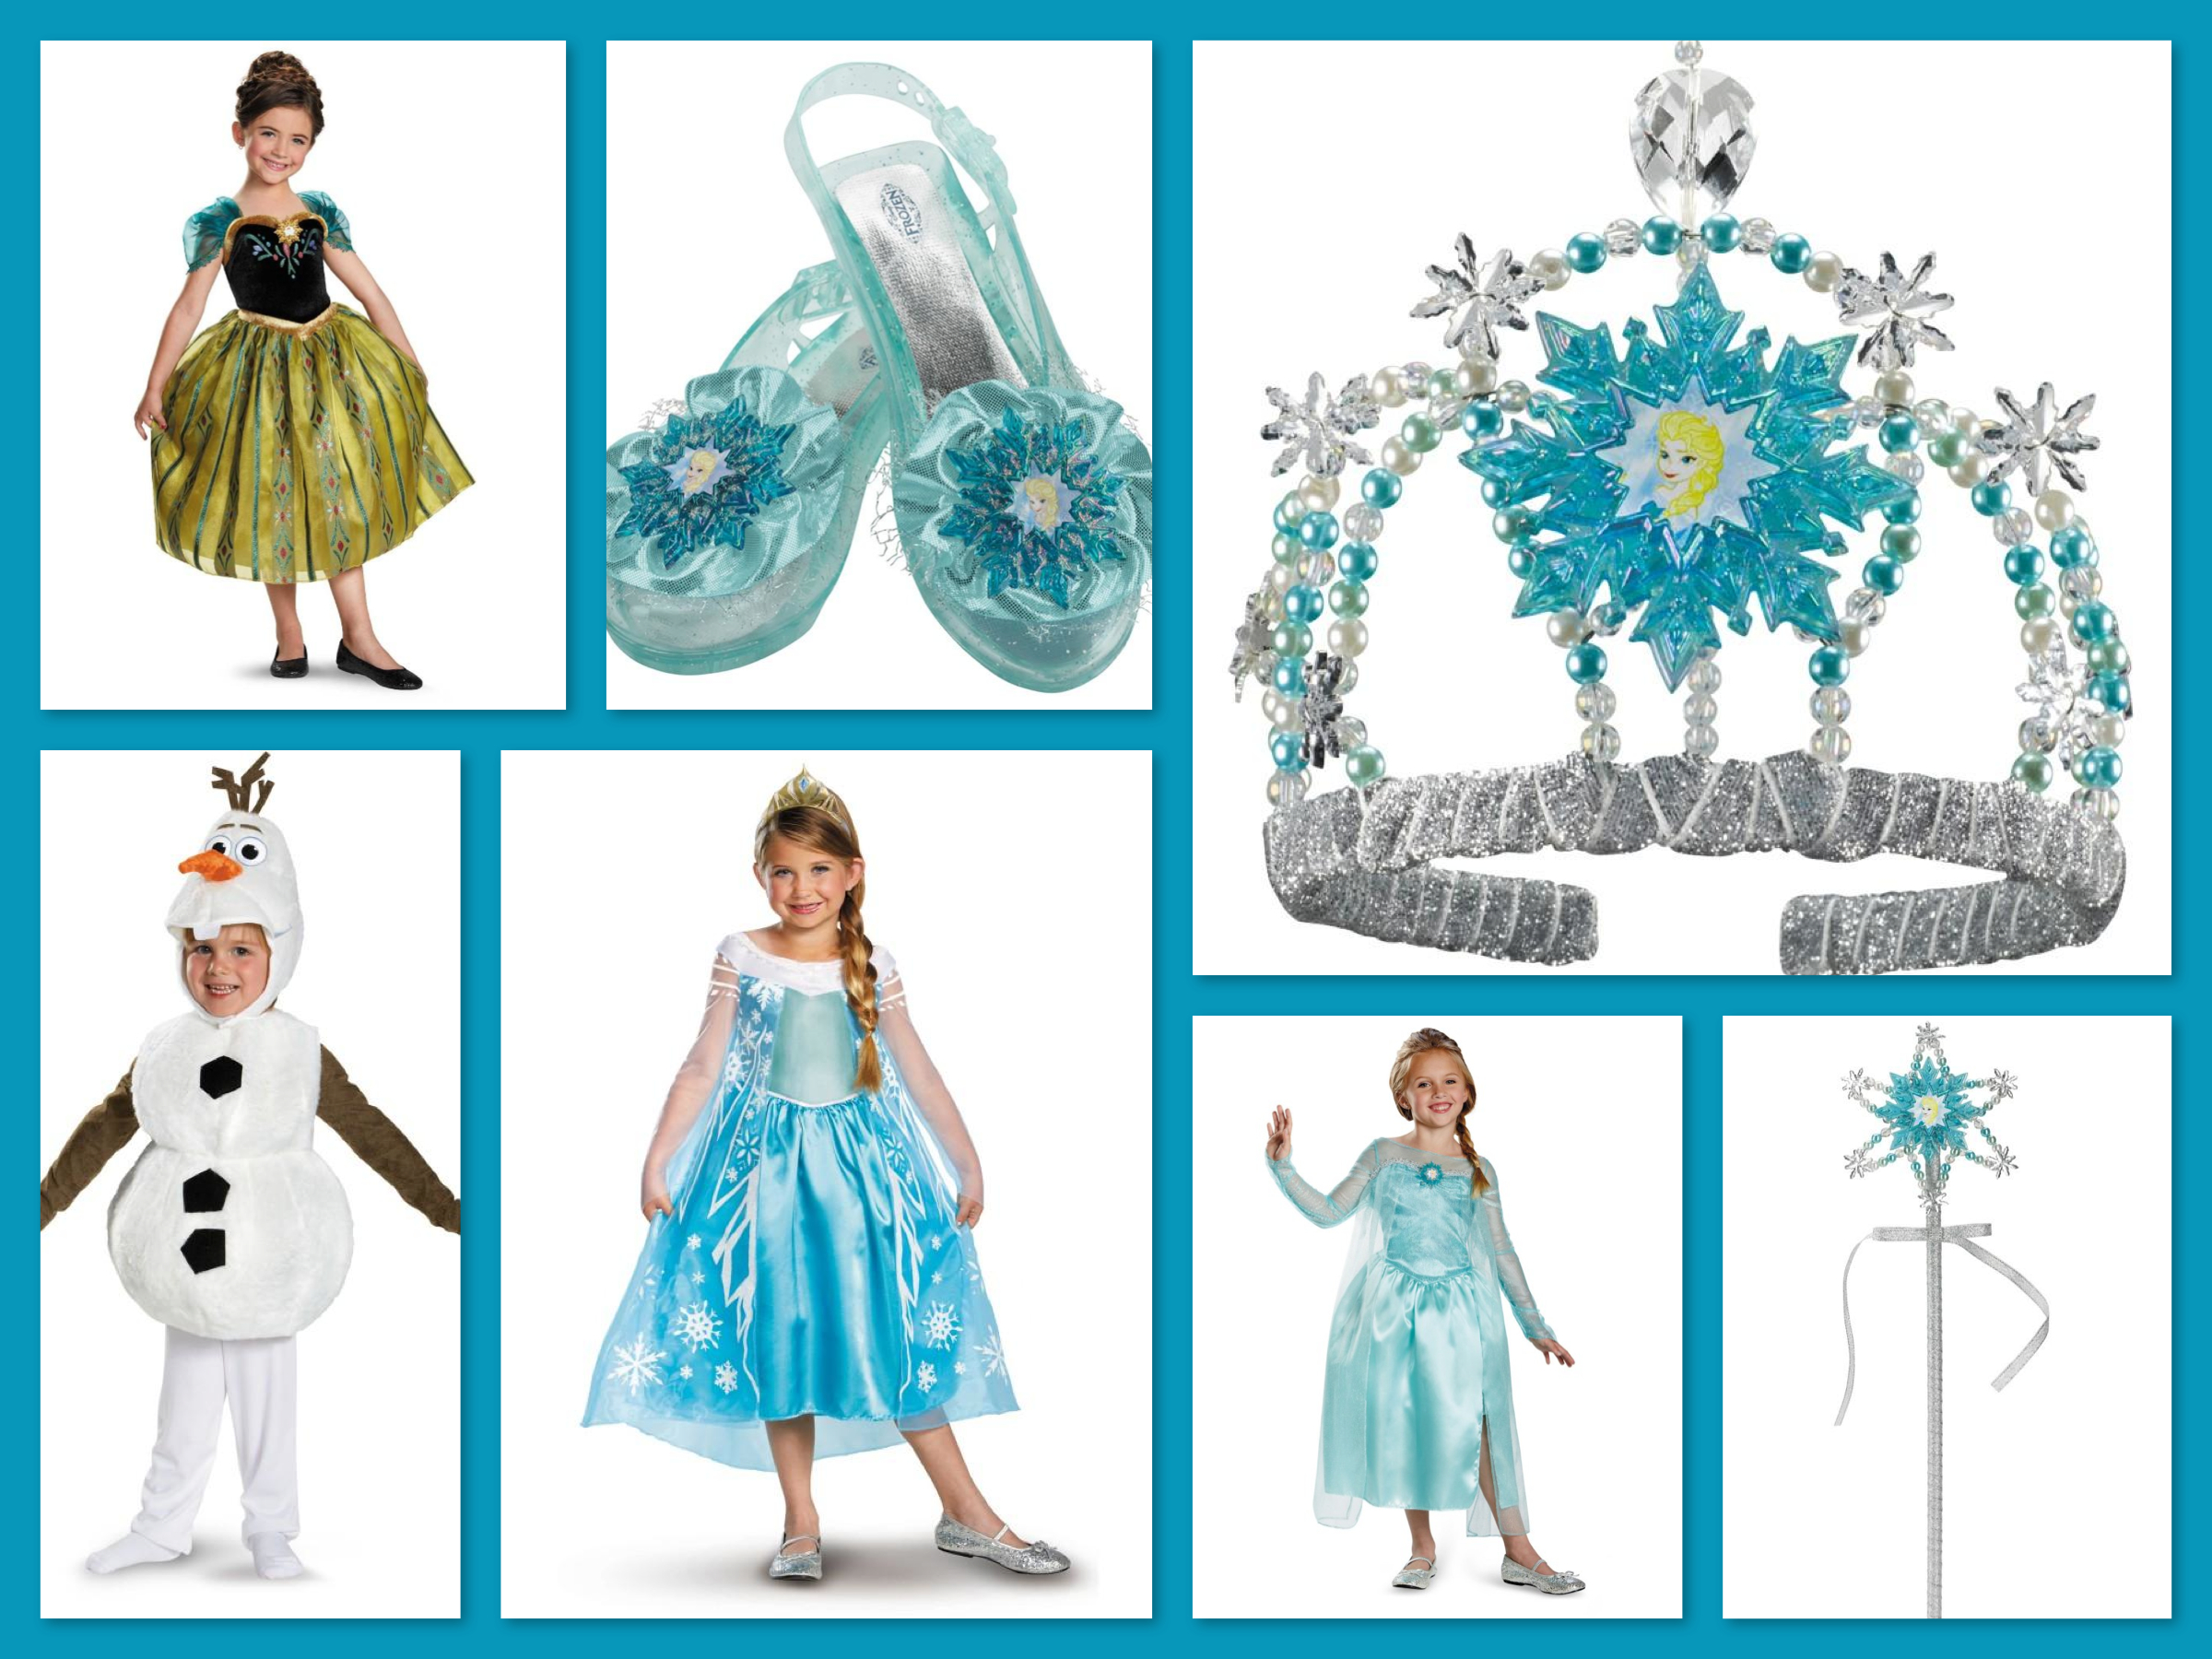 Frozen Costumes & Accessories. Don't Forget the Wand!